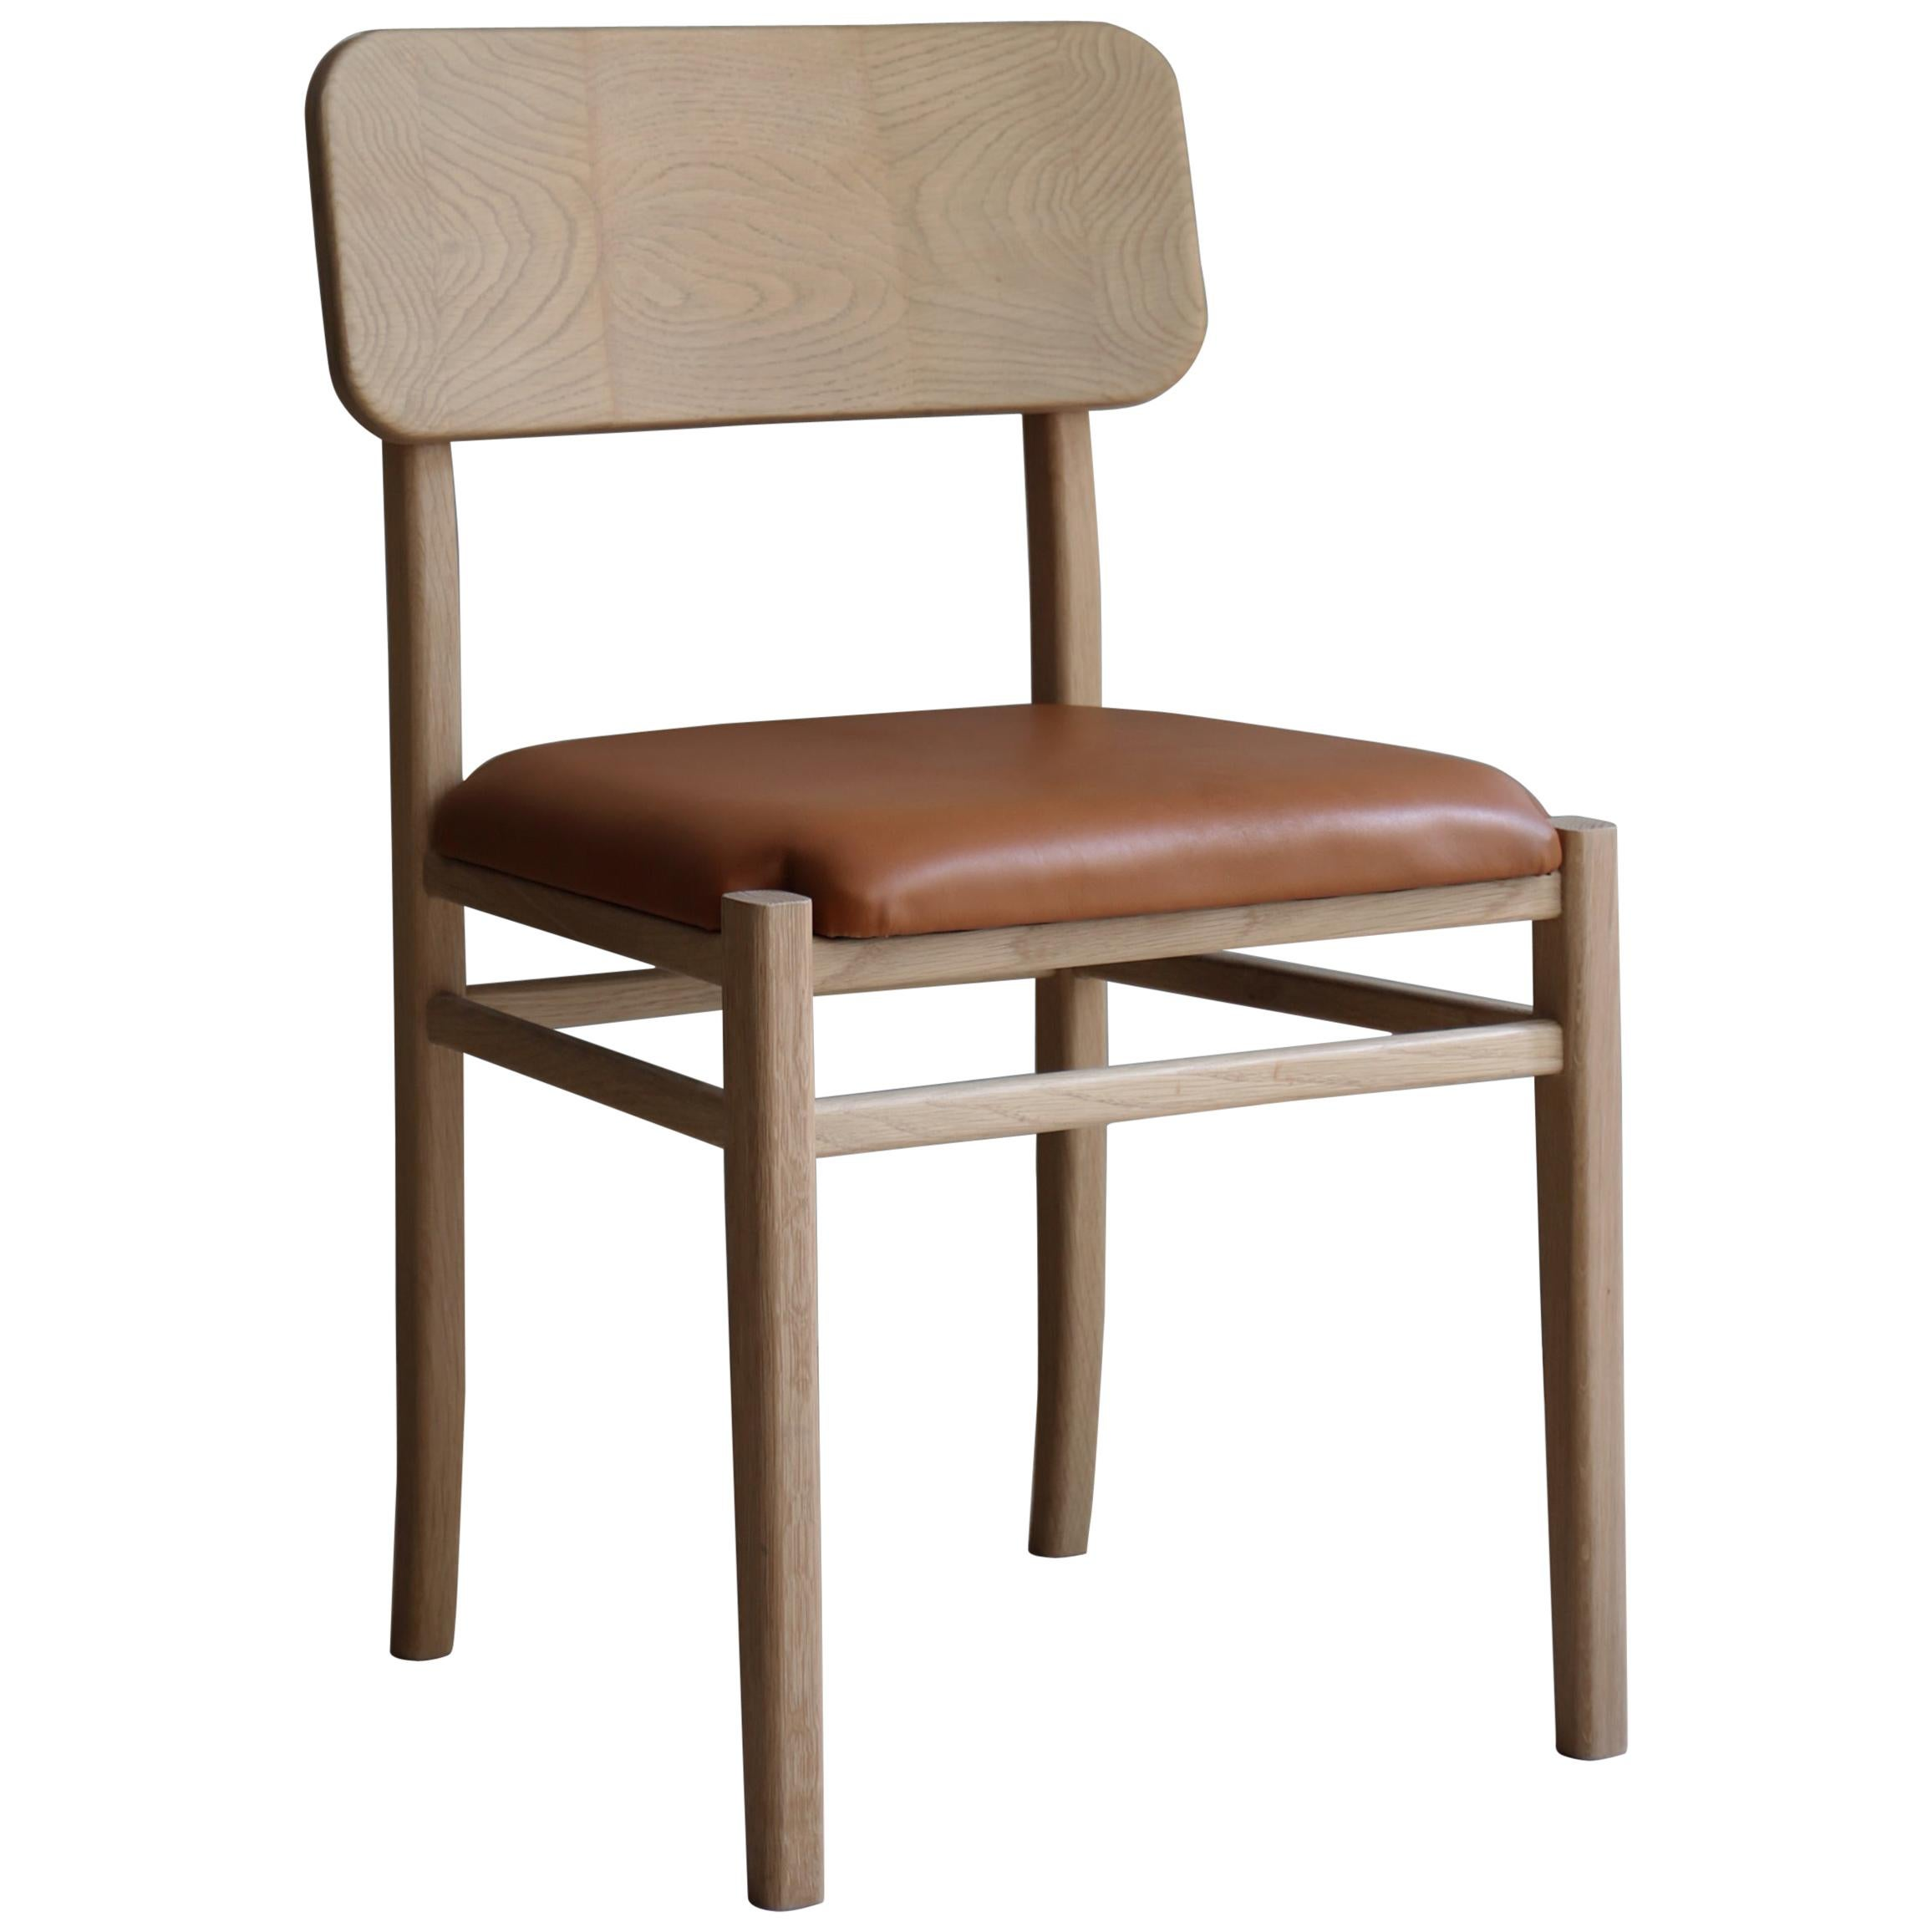 XI, White Oak Chair with Leather Seat from Collection Noviembre by Joel Escalona